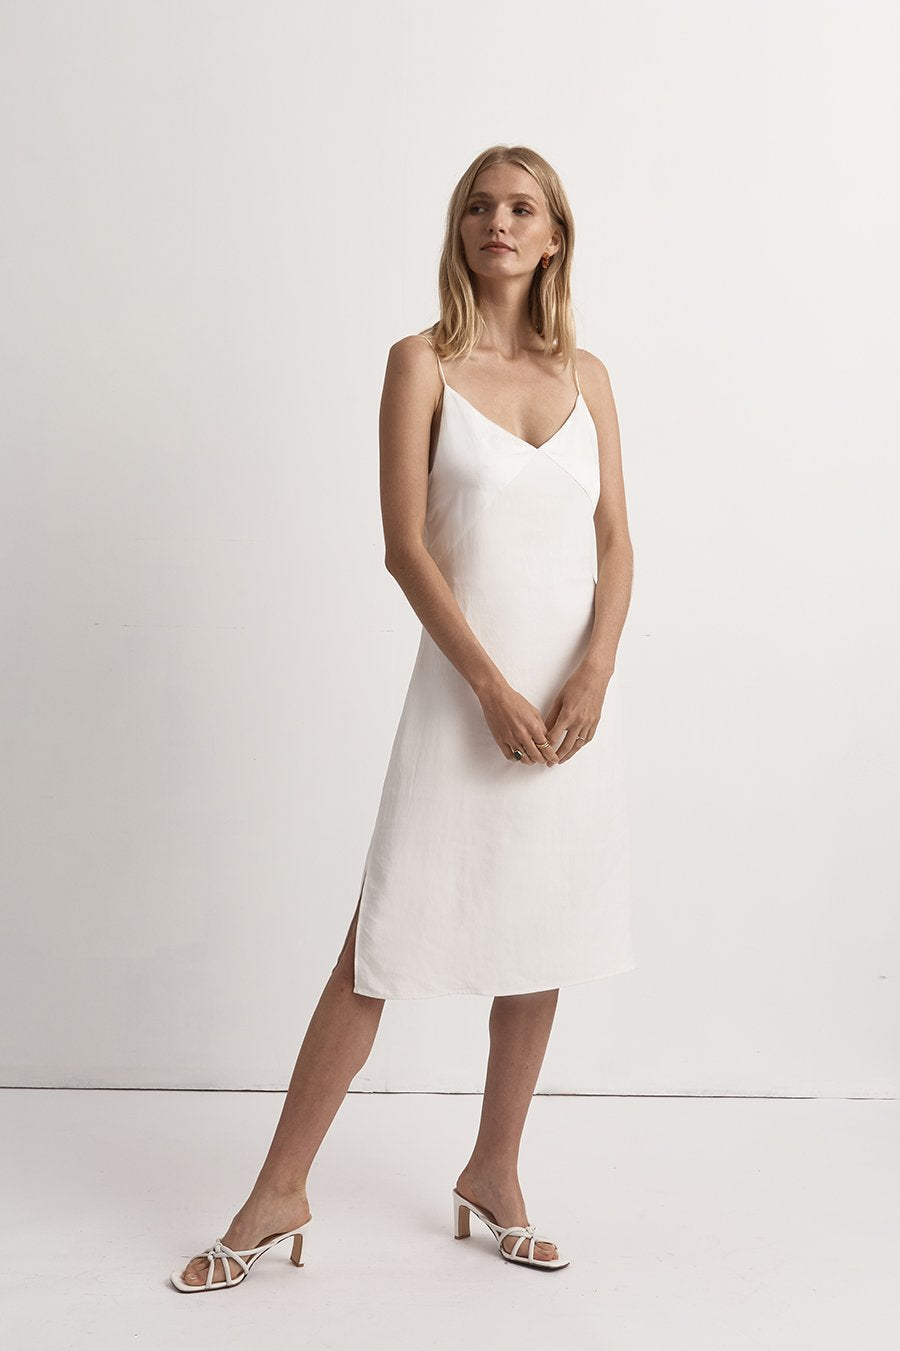 FRIEND OF AUDREY | Fayette Contrast Satin Dress